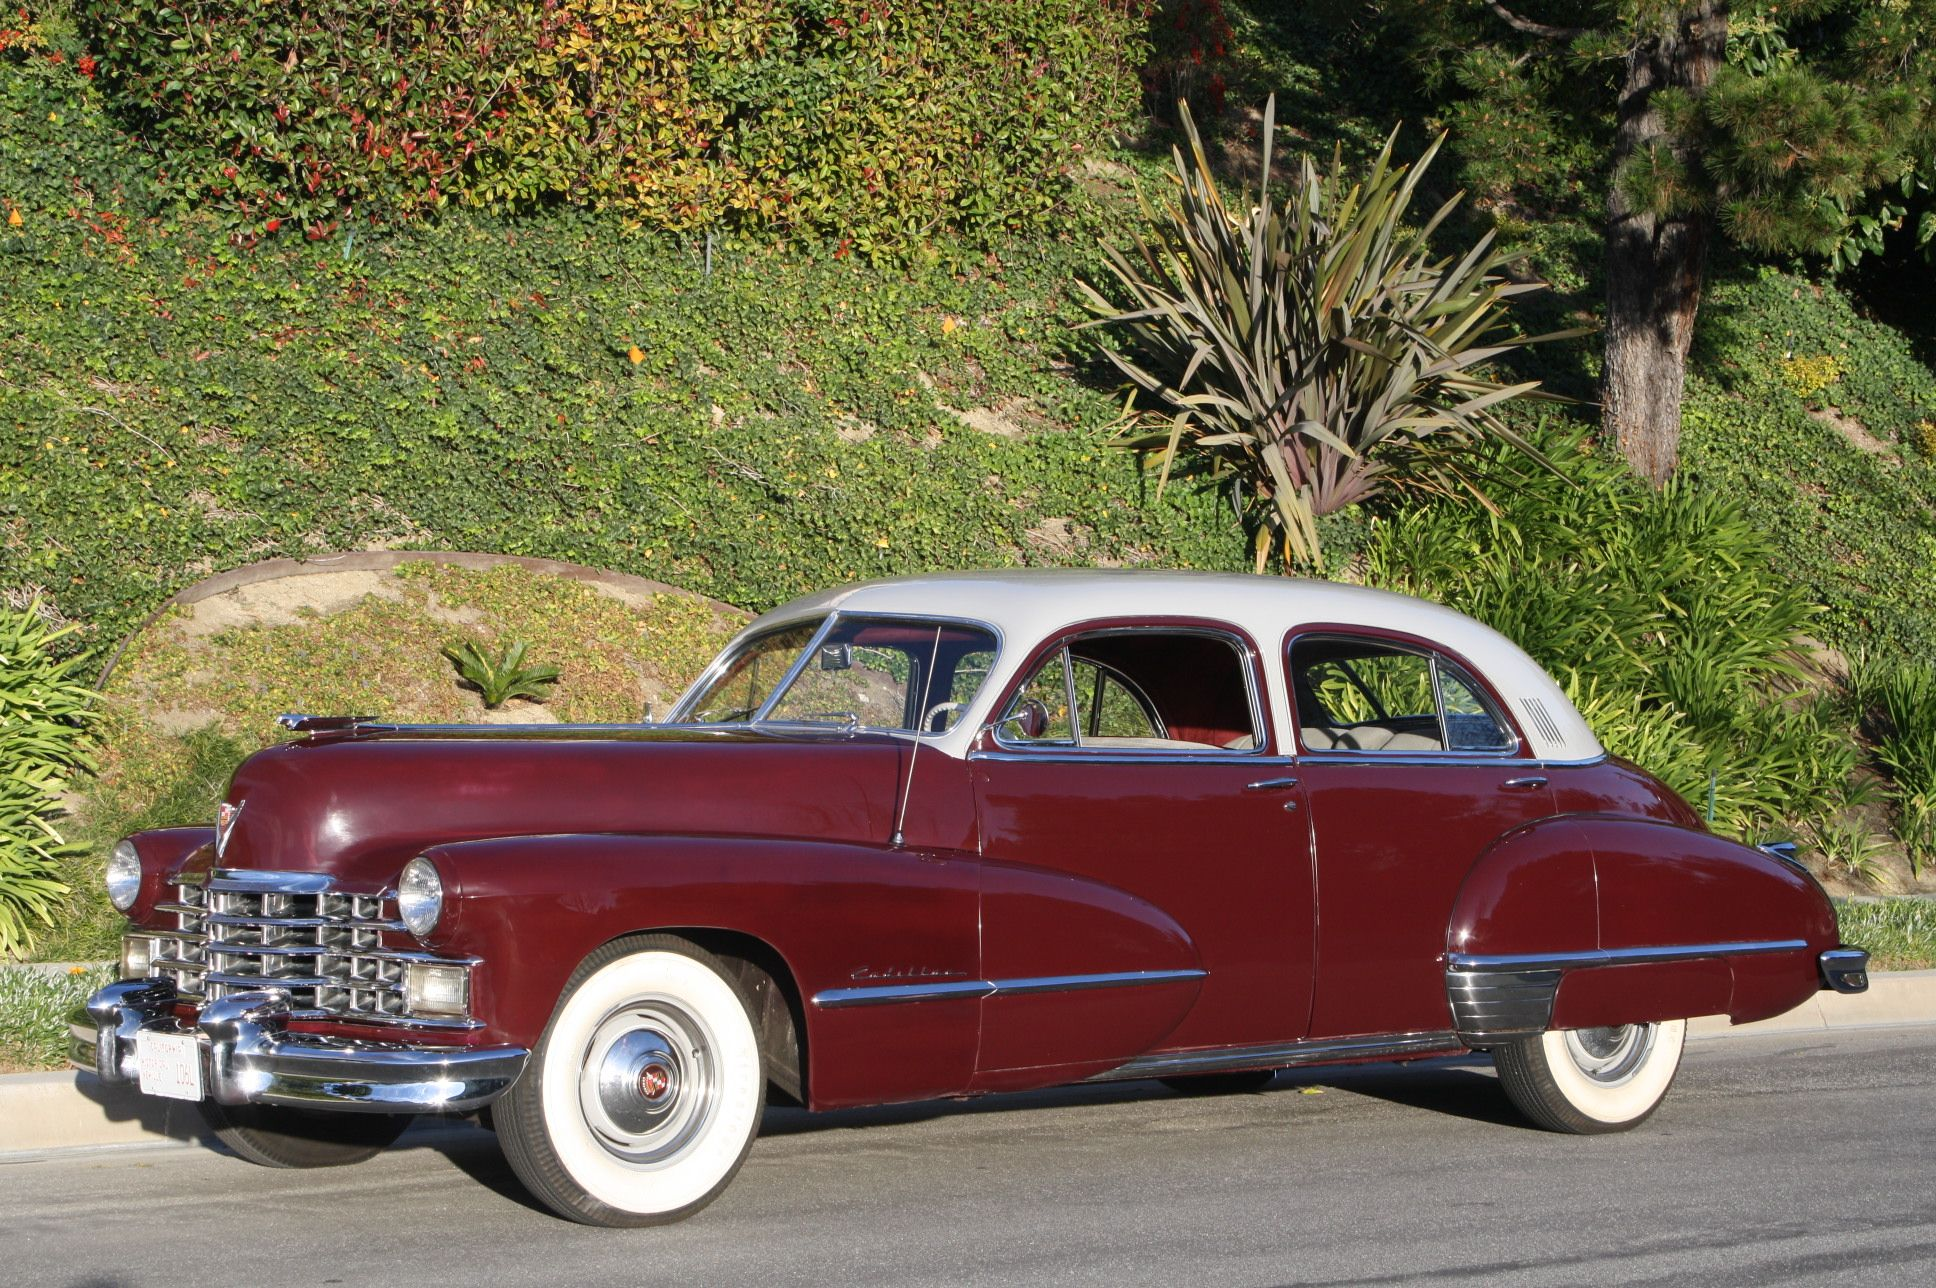 cars from 1947 | 47Caddy60Special 008 | car 47 | Pinterest ...